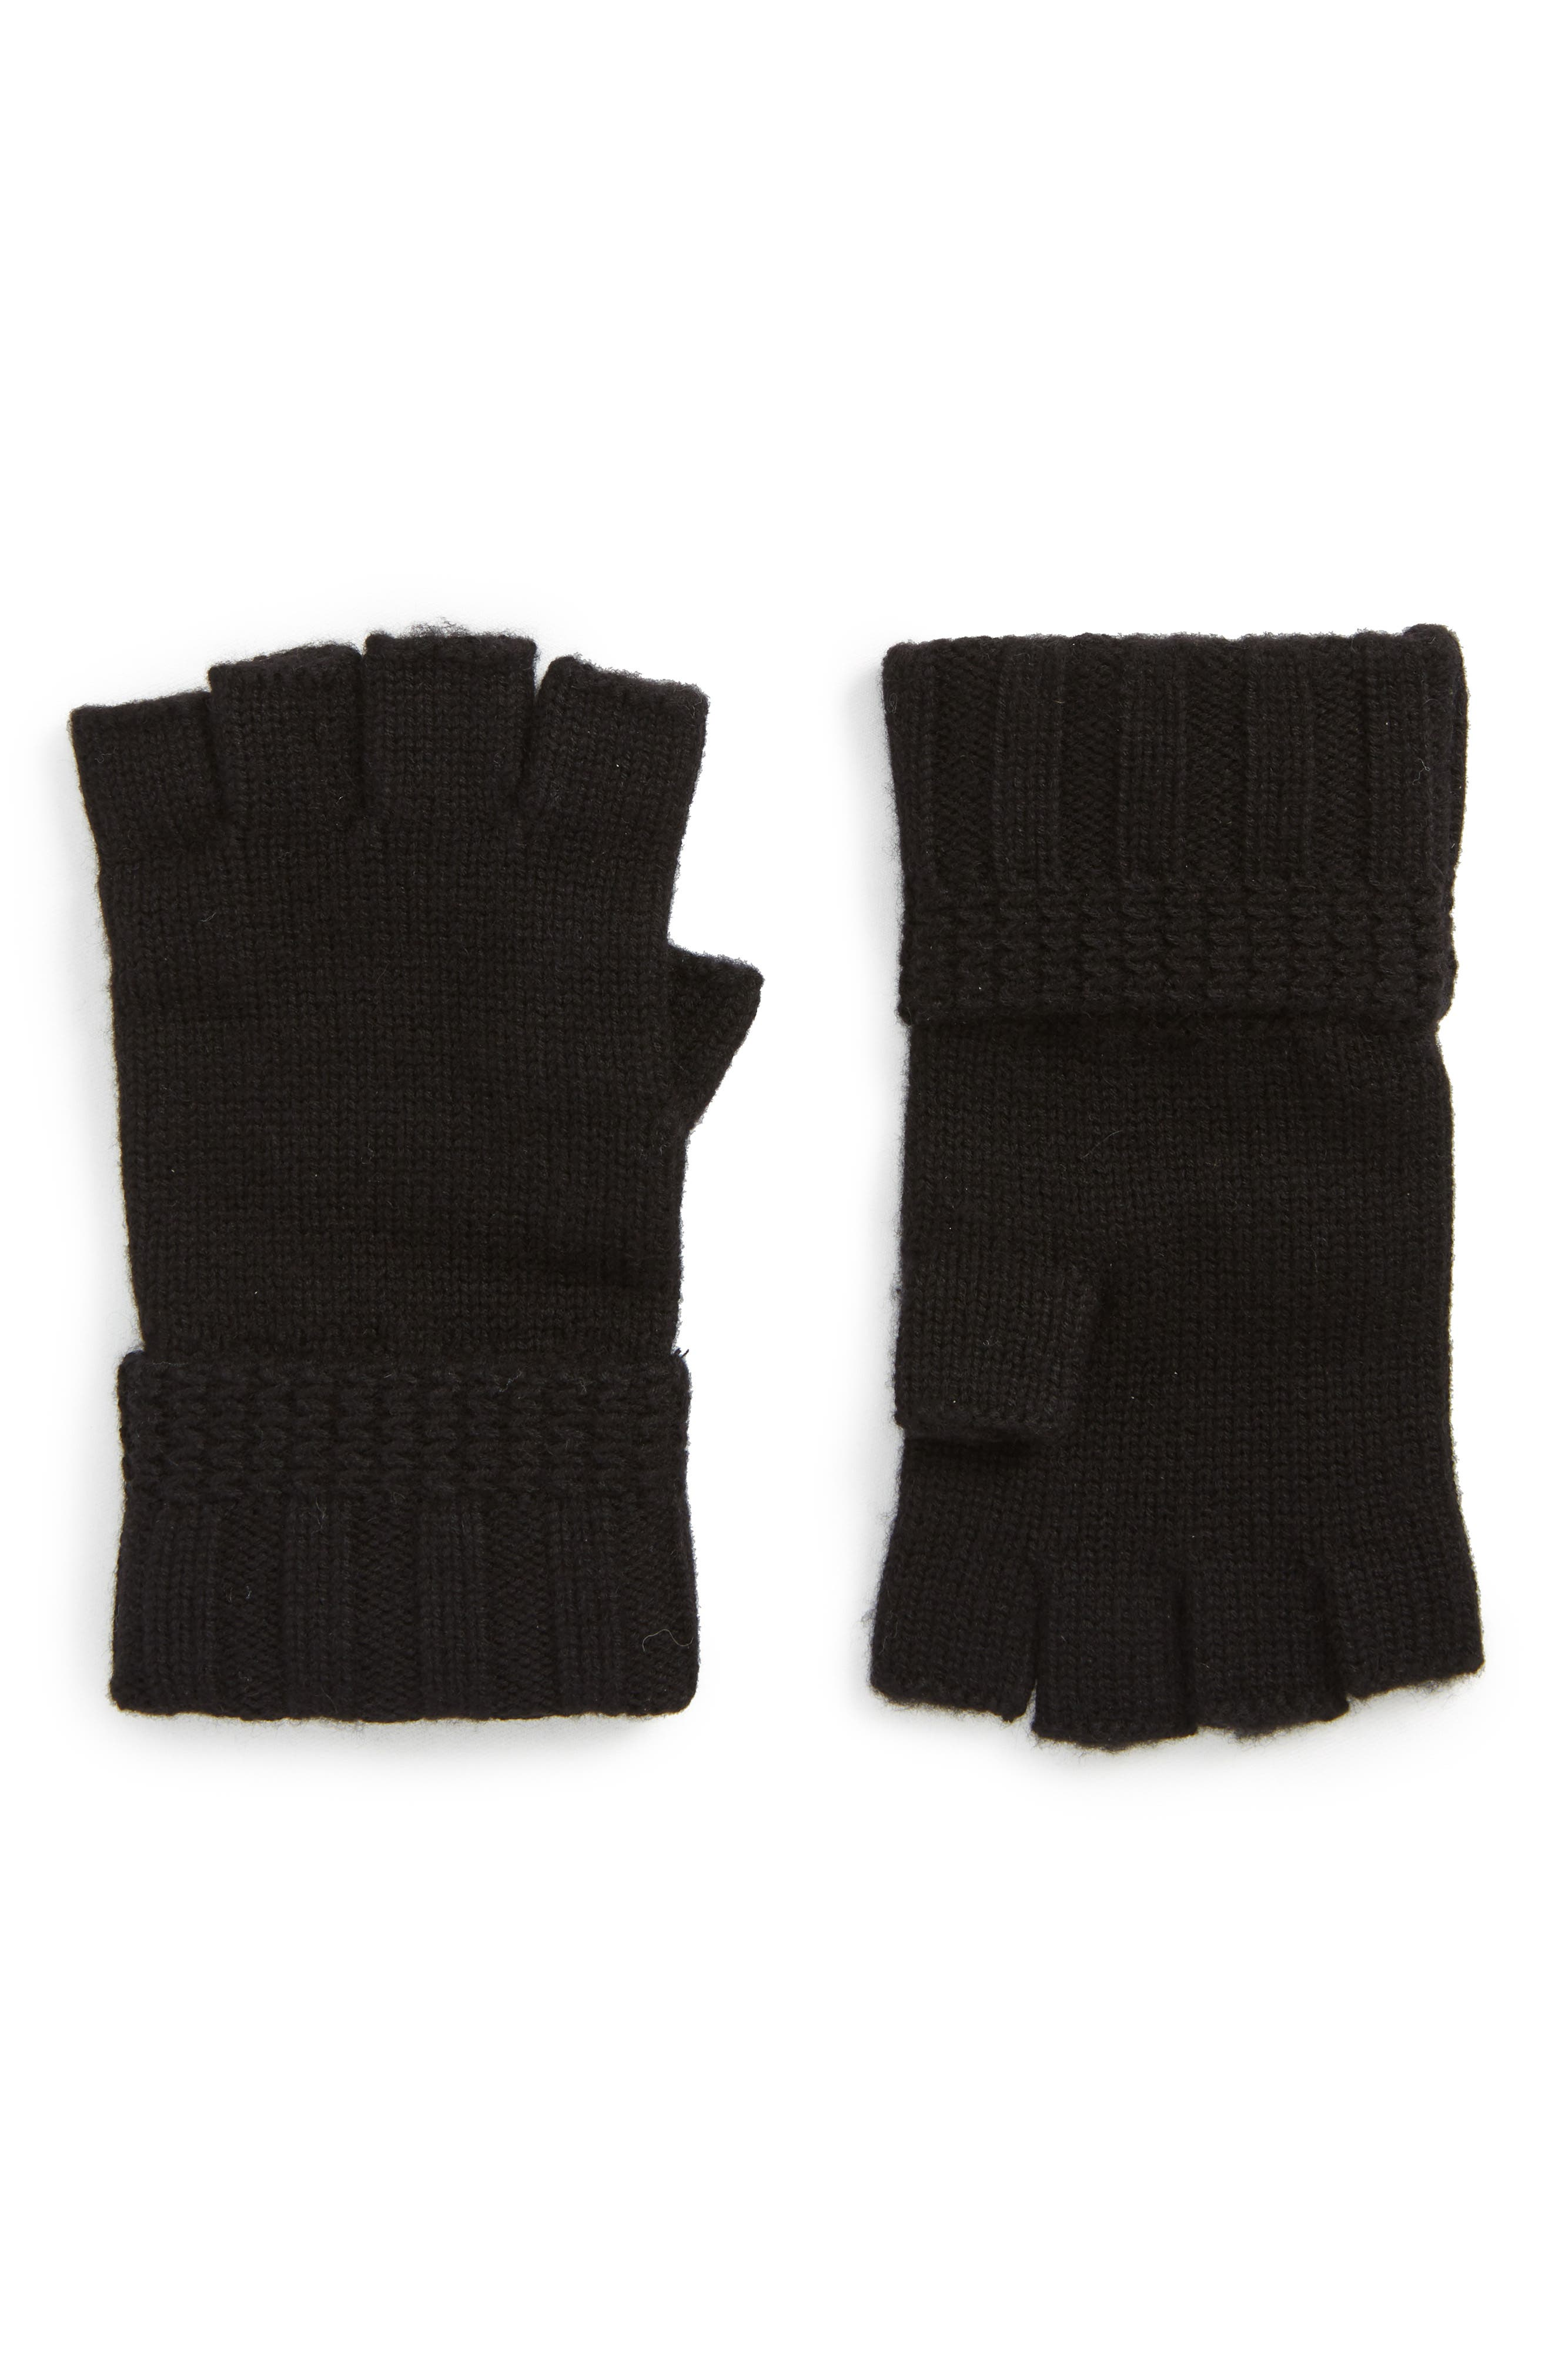 UGG<sup>®</sup> Texture Knit Fingerless Gloves,                             Main thumbnail 1, color,                             001